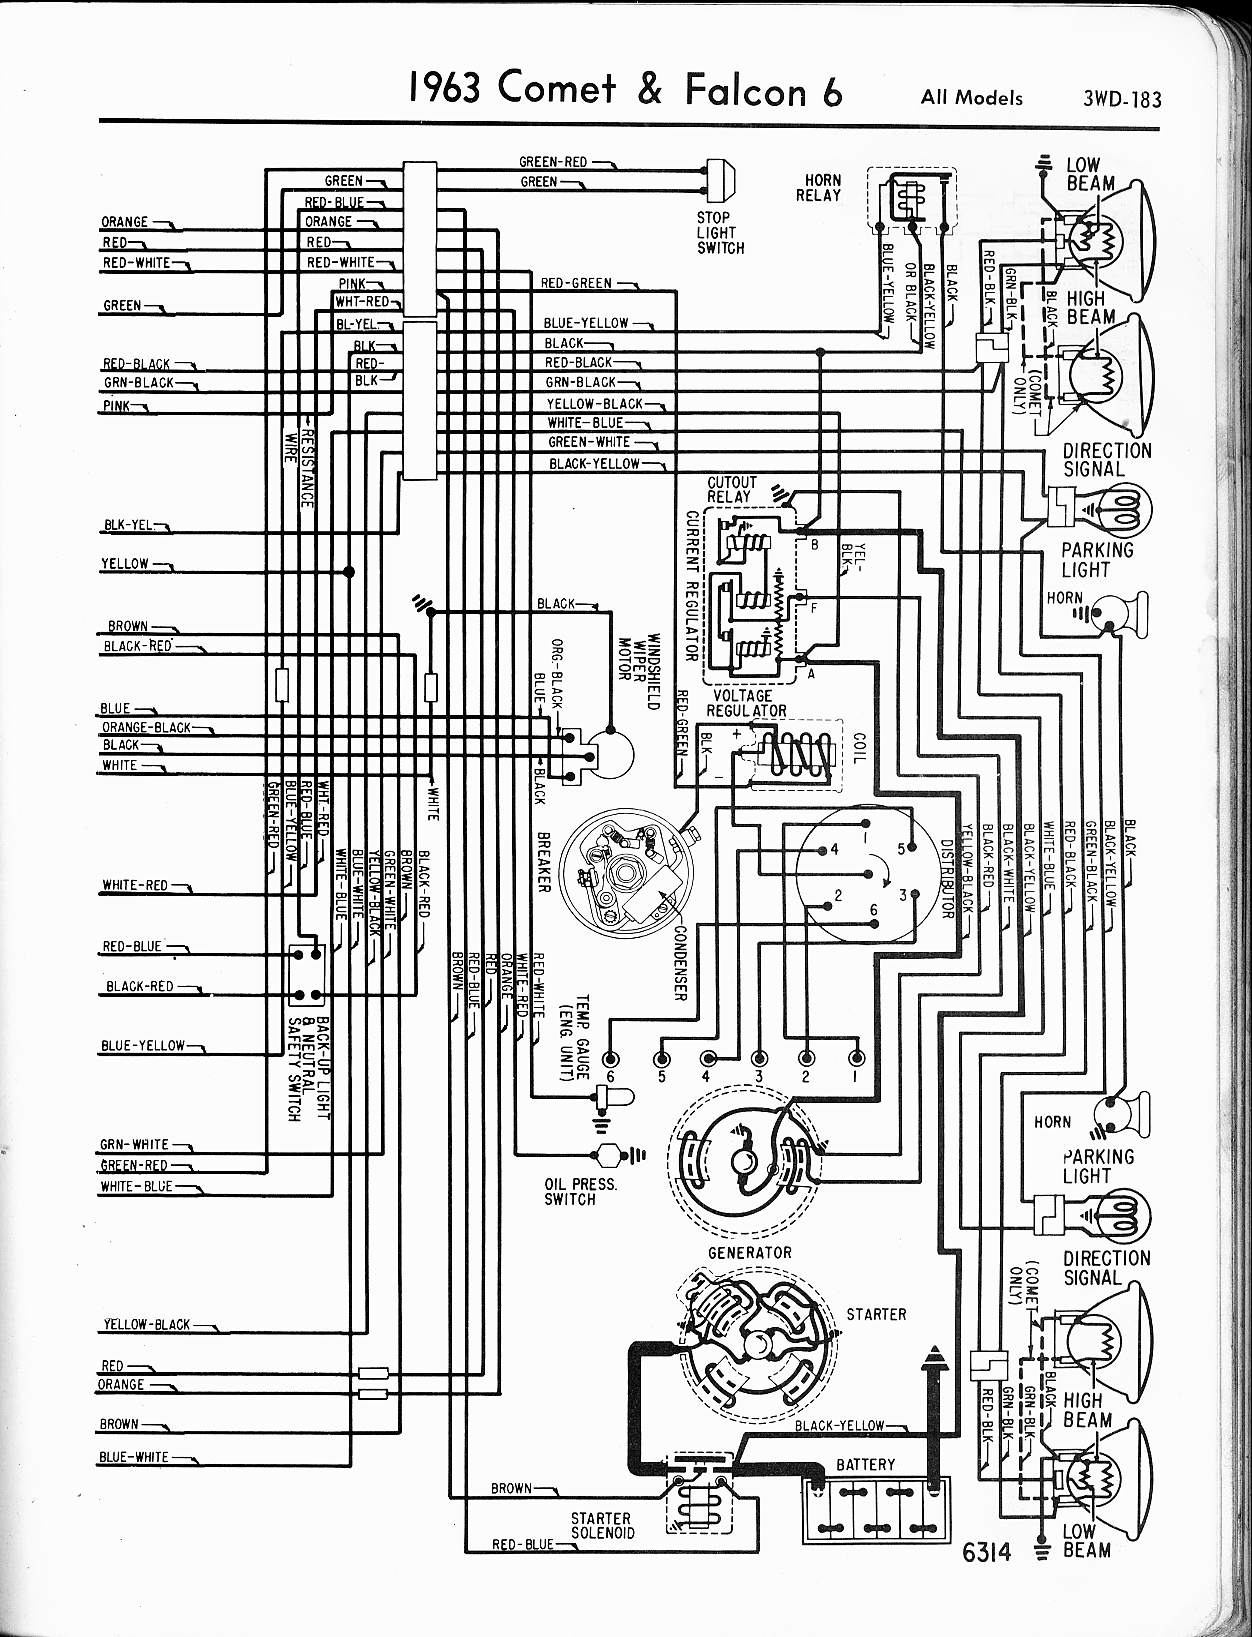 1957 Ford Ranchero Wiring Diagram Trusted 65 Thunderbird 57 Diagrams 1965 Falcon